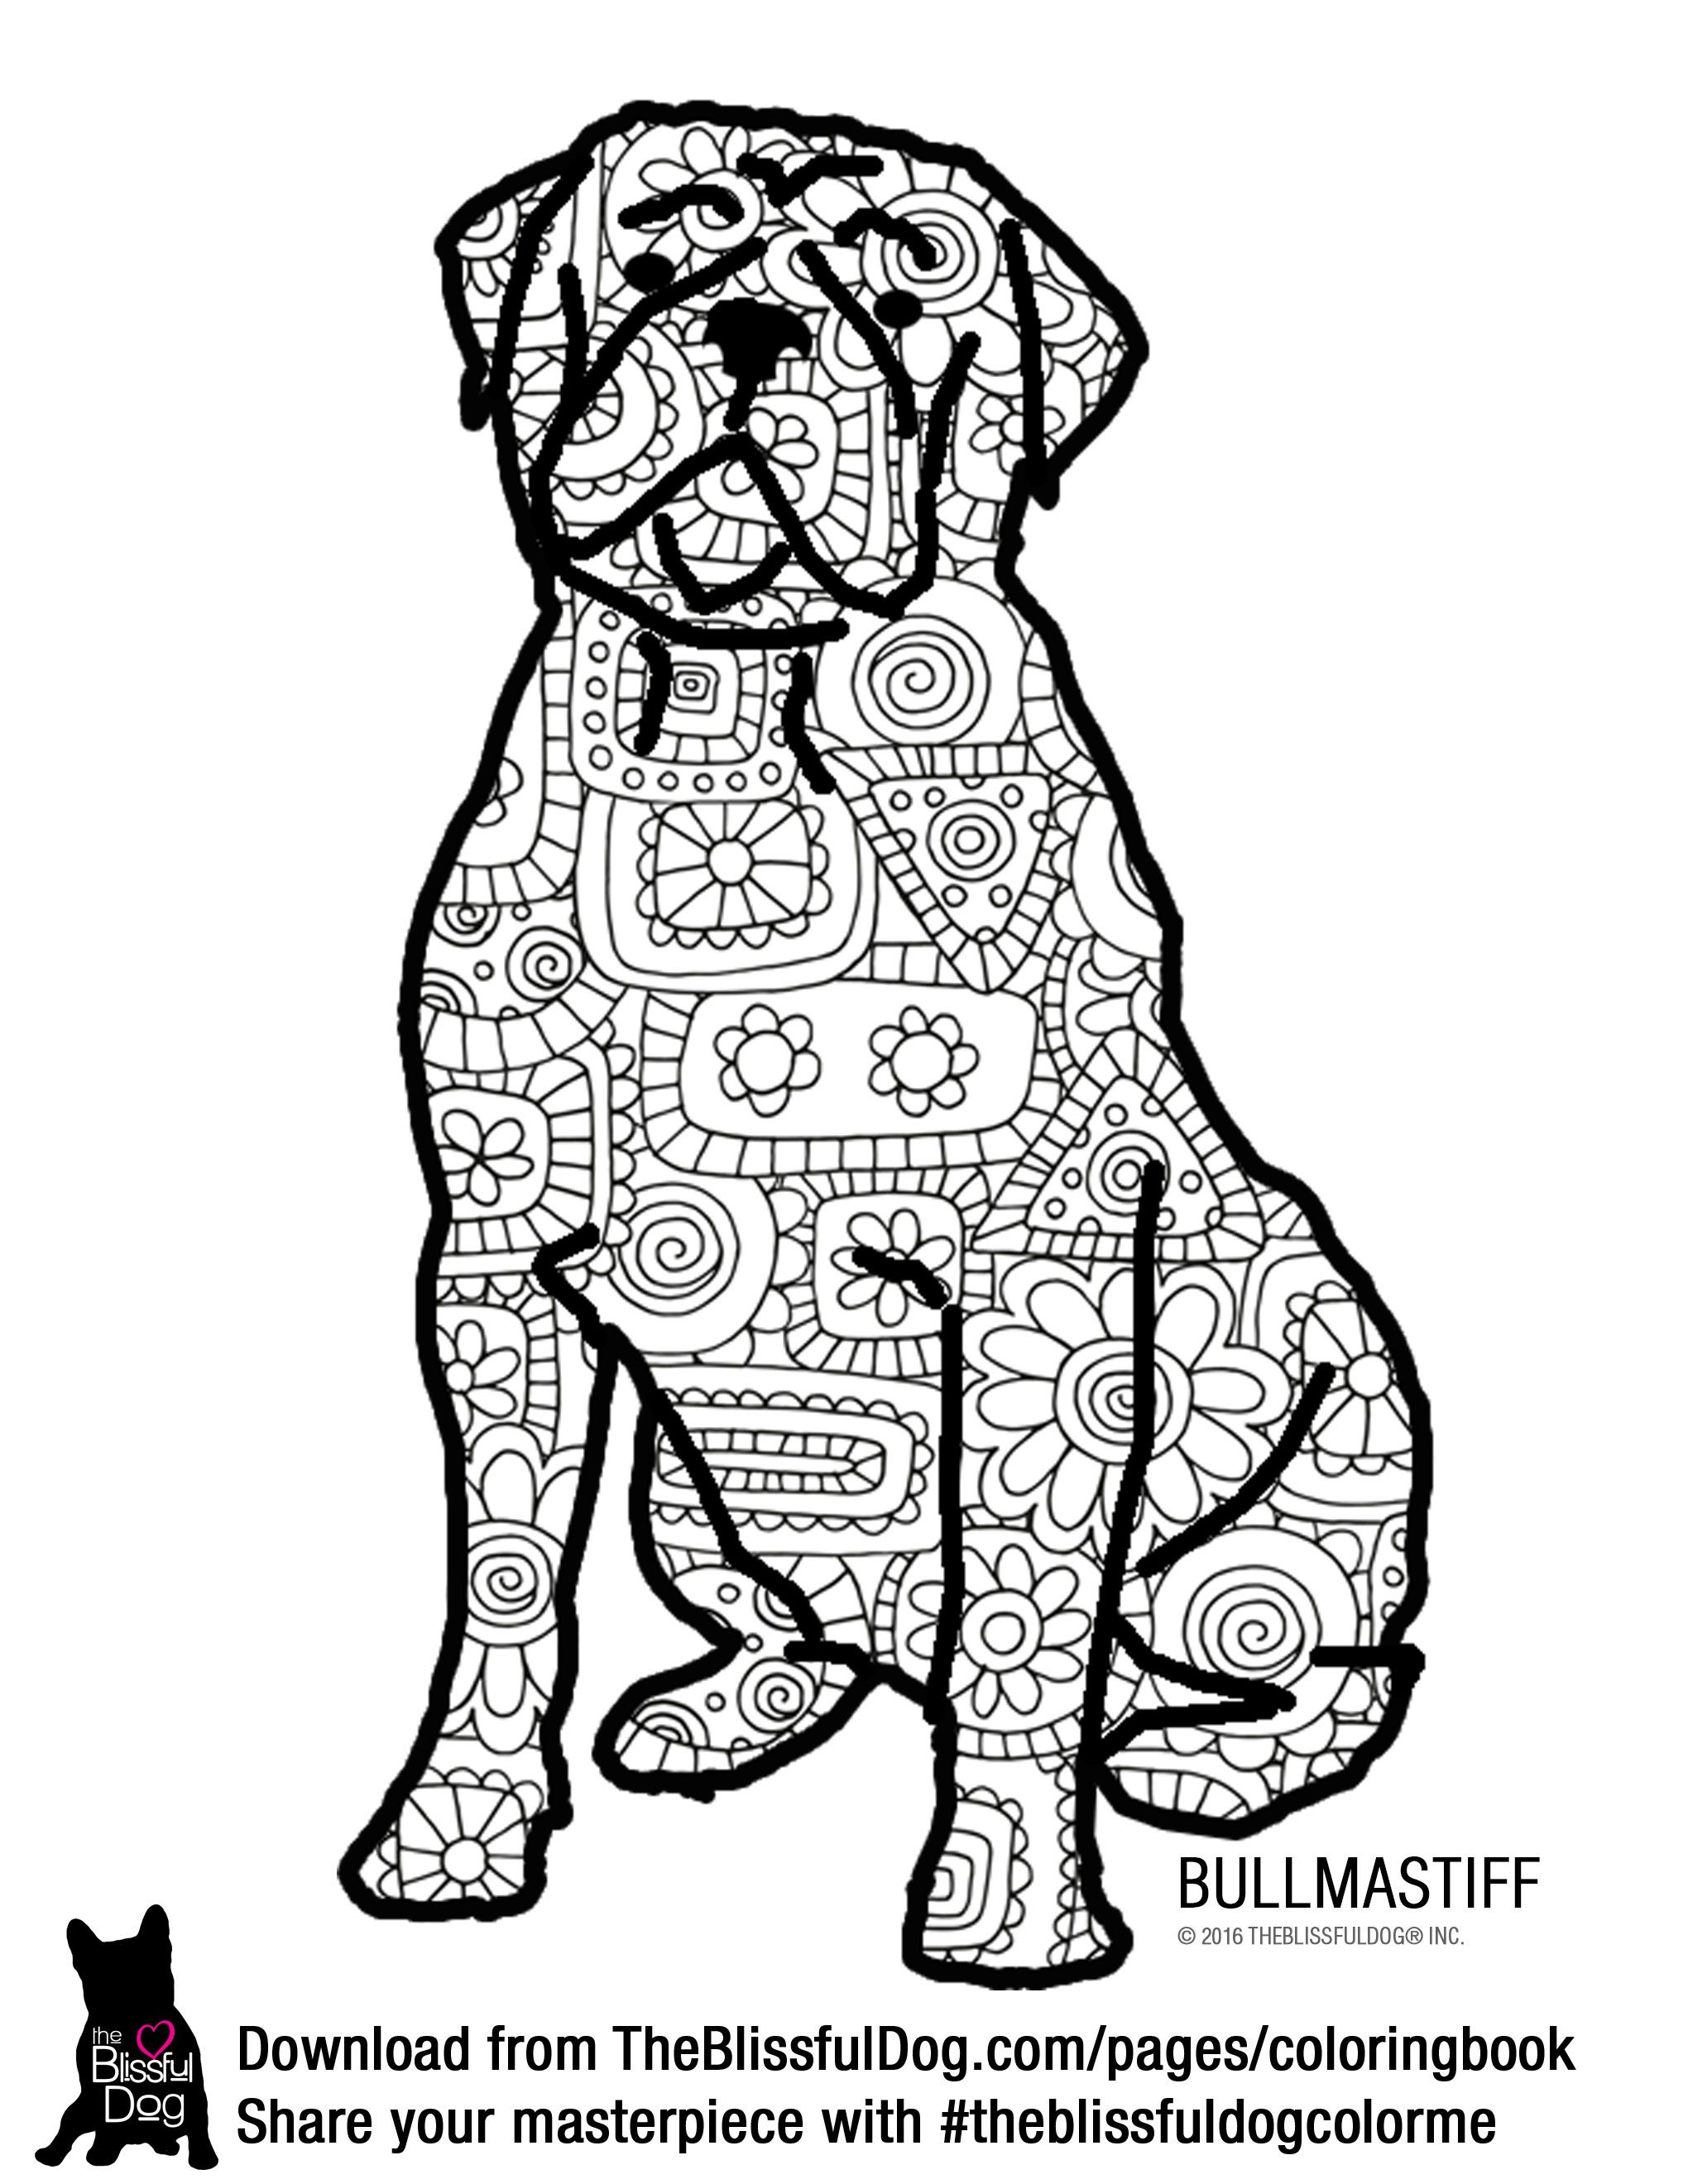 Color This Bold Bullmastiff In Brights Pastels Or Jewel Tones Hell